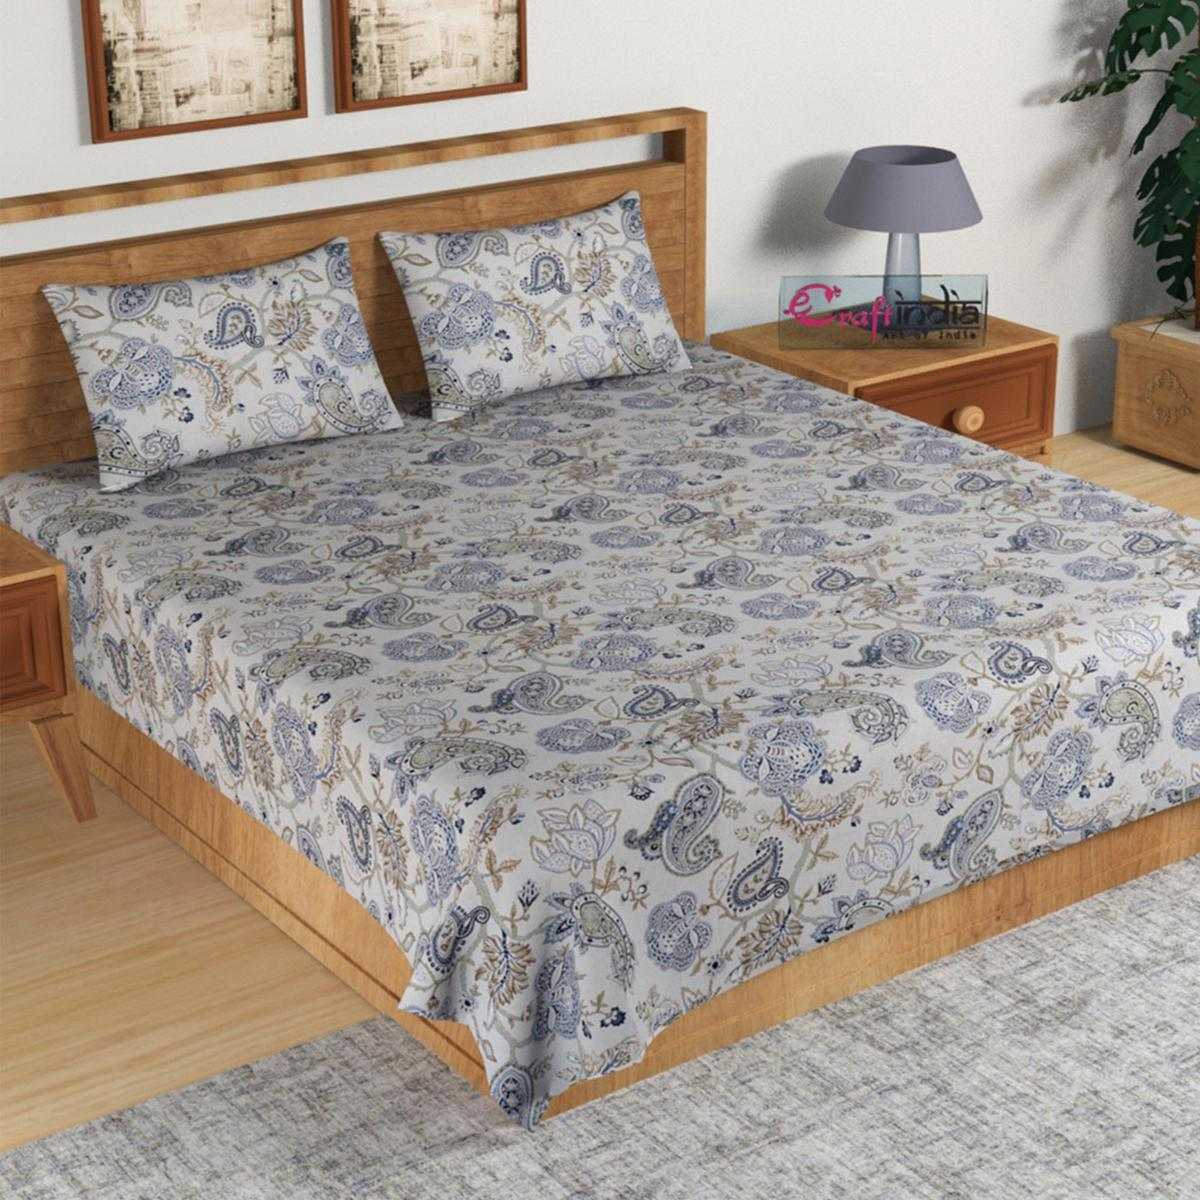 eCraftIndia - 210 TC Pure Cotton Premium Double Bed King Size Ethnic Motifs Design Bedsheet (100 In x 108 In) with 2 pillow cover - Blue